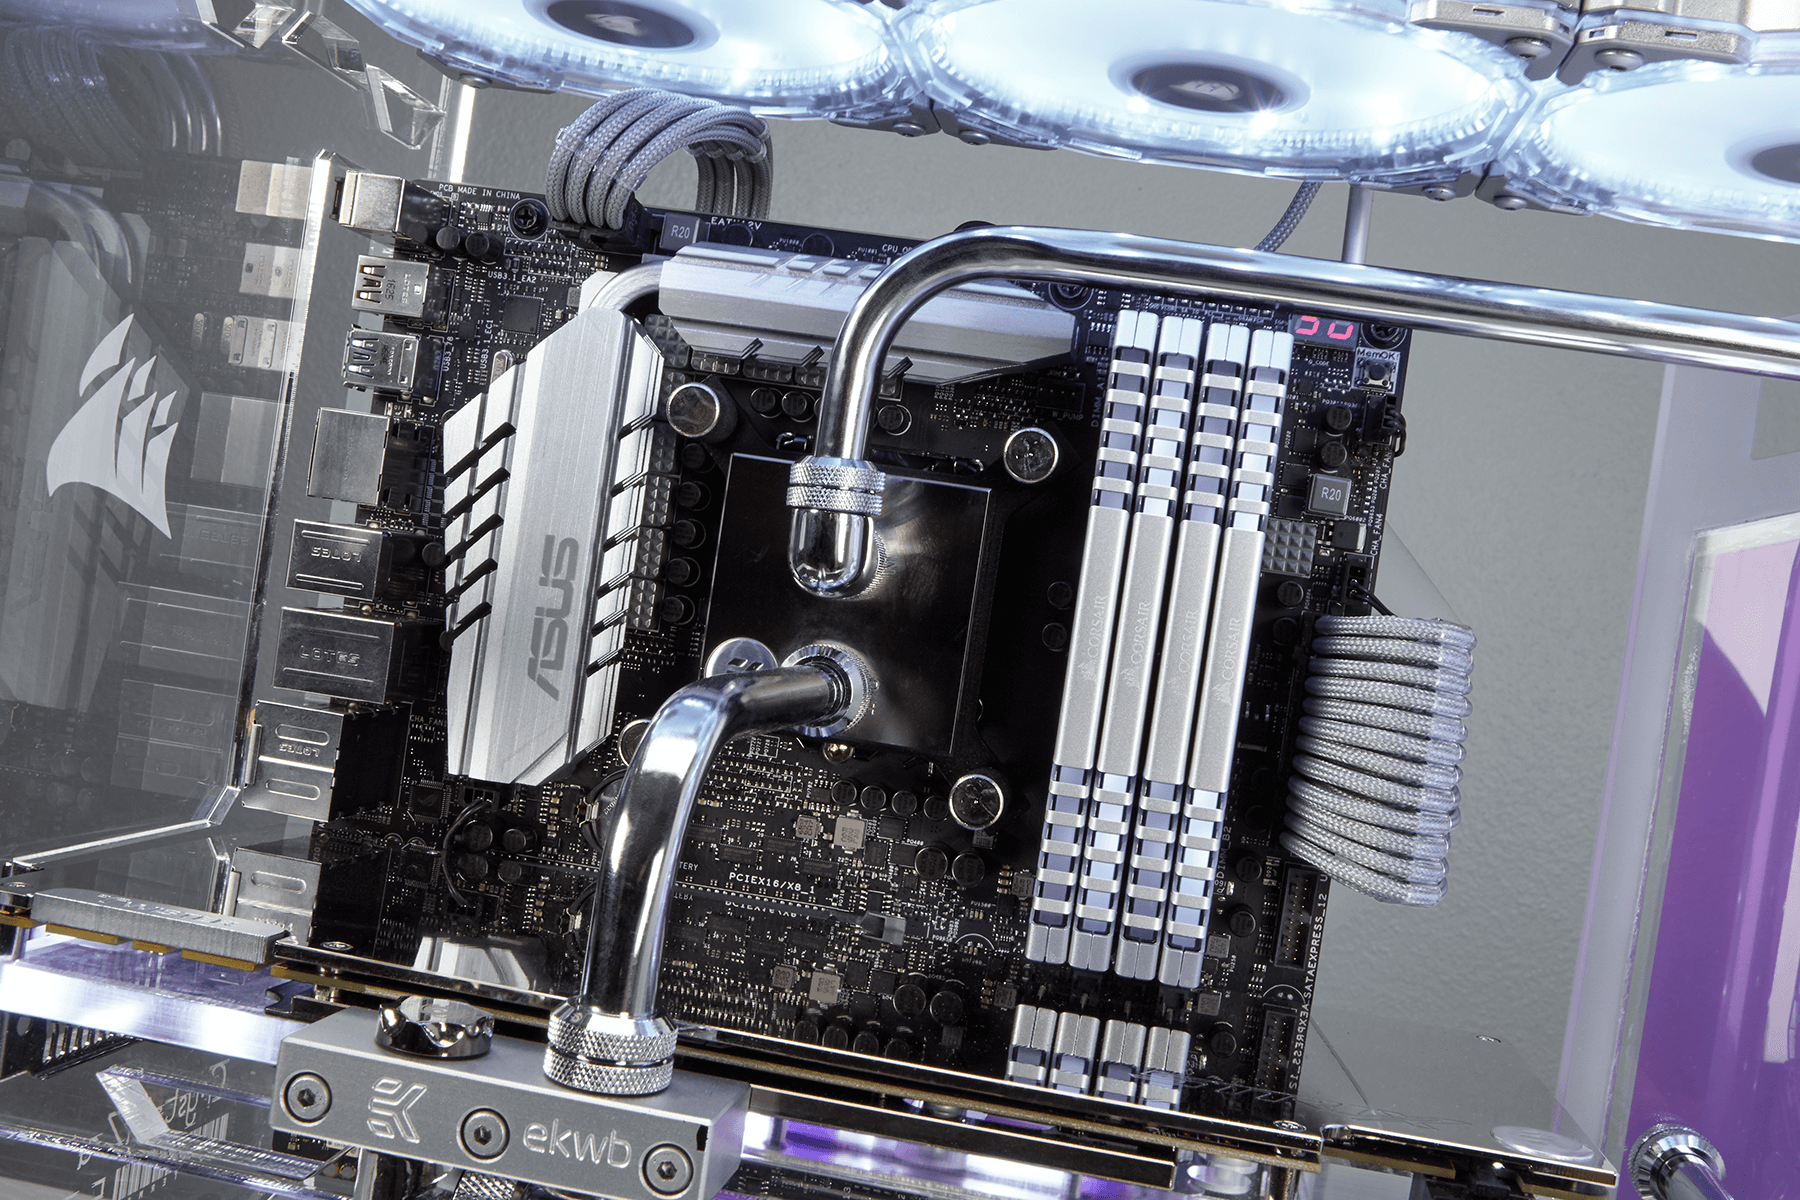 Twistermod_Corsair_ROG_570x_Crystalized_12